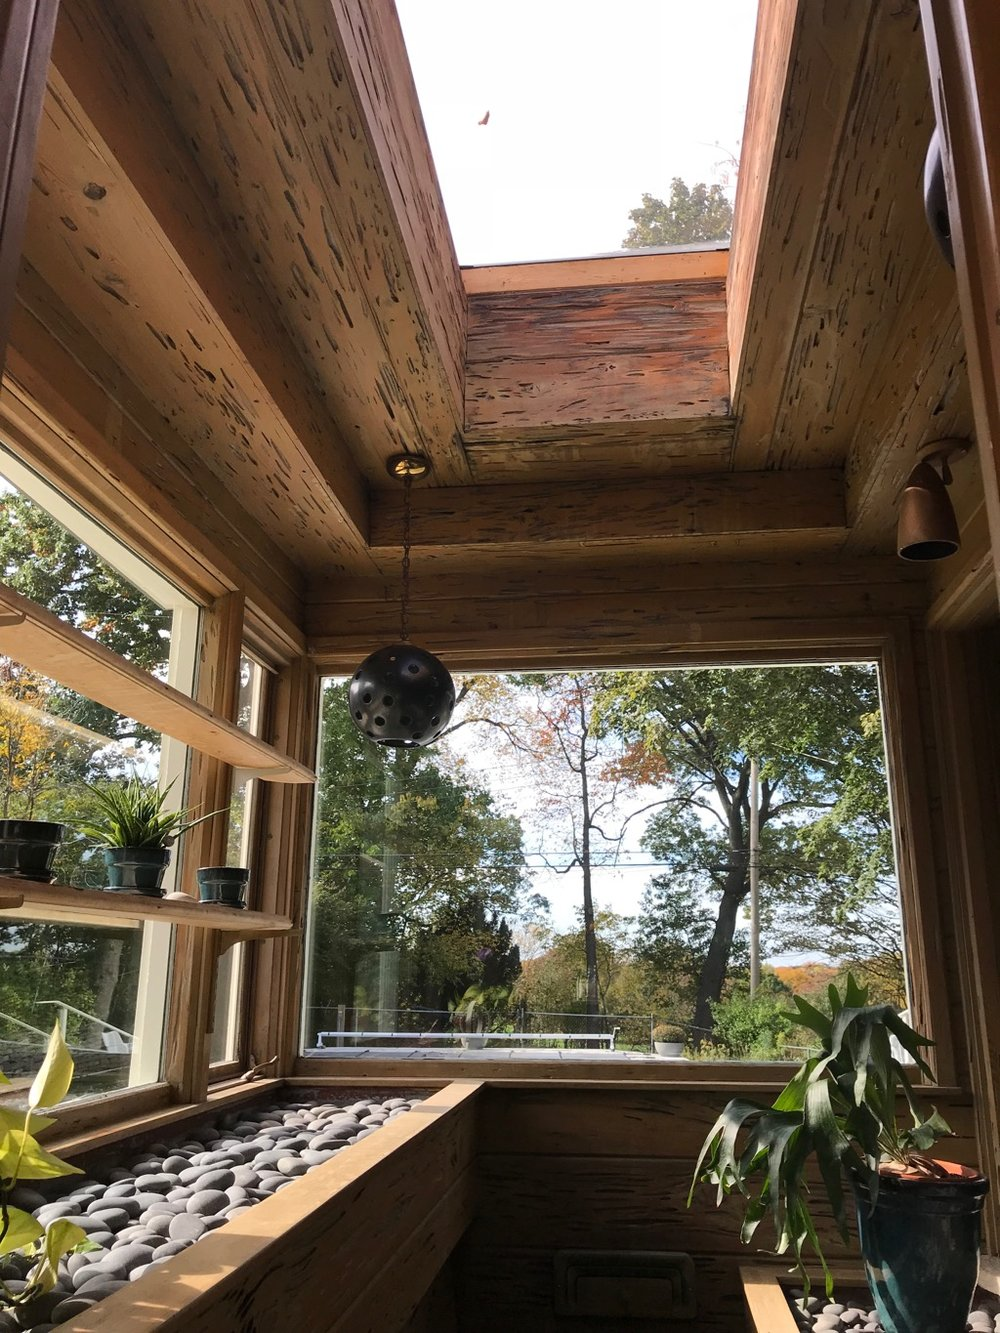 GREENHOUSE WITH PECKY CYPRESS CEILING AND SKYLIGHT